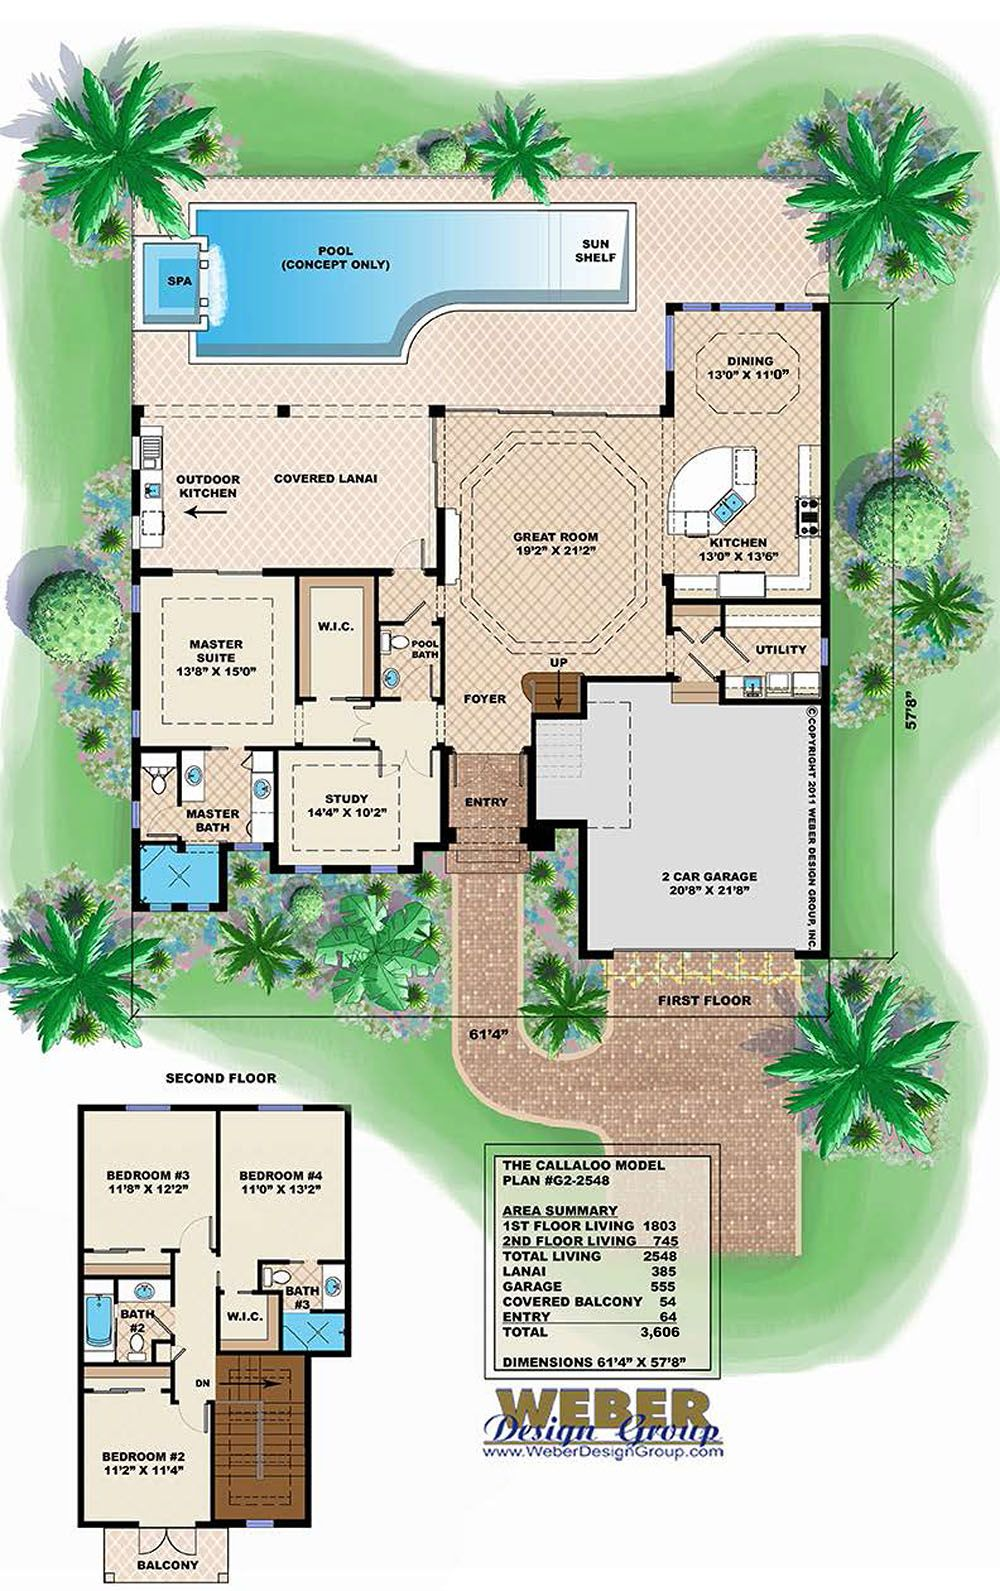 Key West Style House Plans Typically Feature Raised Foundations, Shady  Porches, And Numerous Windows Part 67